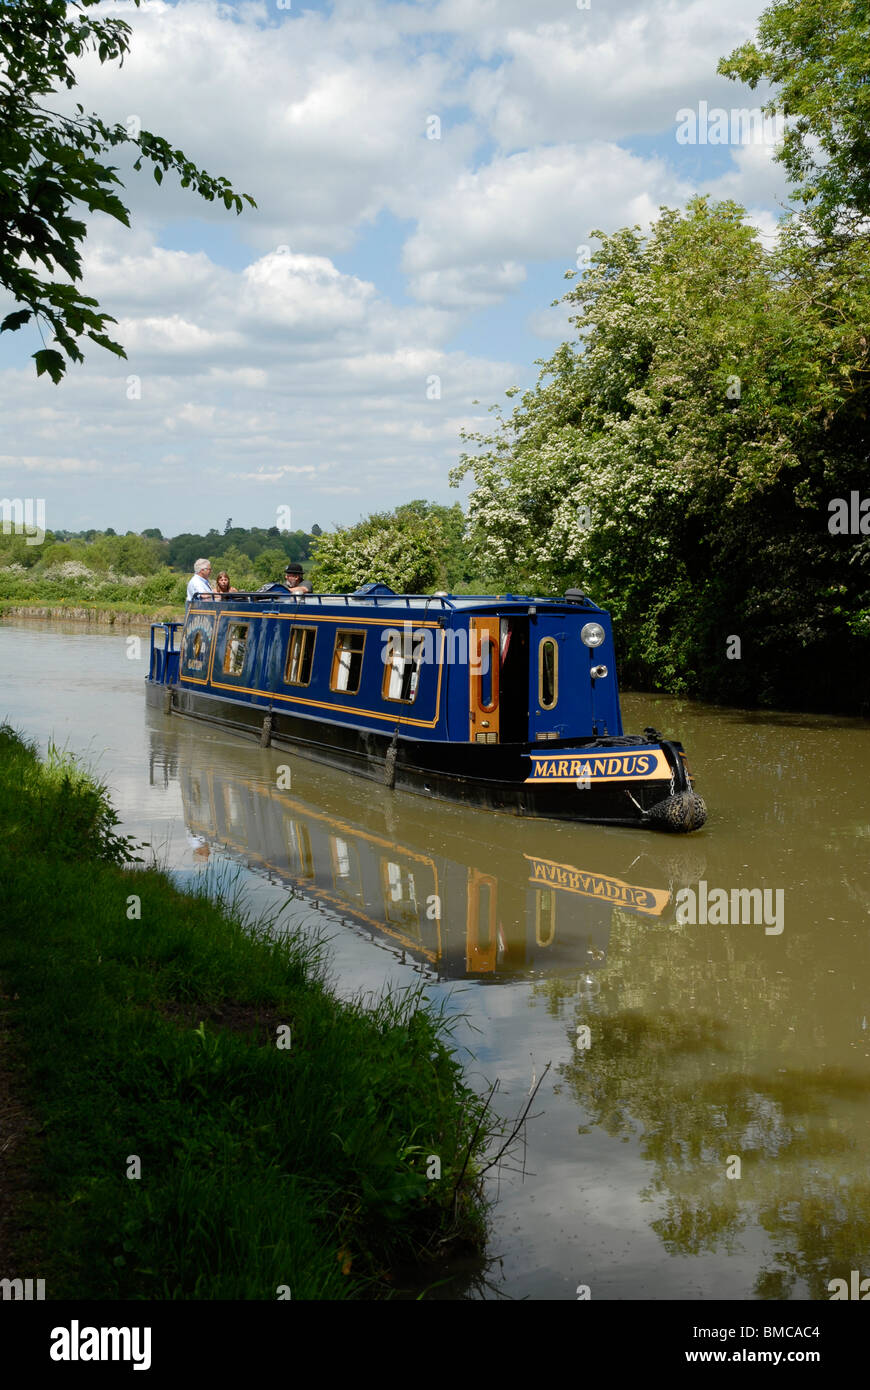 A narrowboat on the Grand Union Canal at Cosgrove, Northamptonshire, 2010. - Stock Image